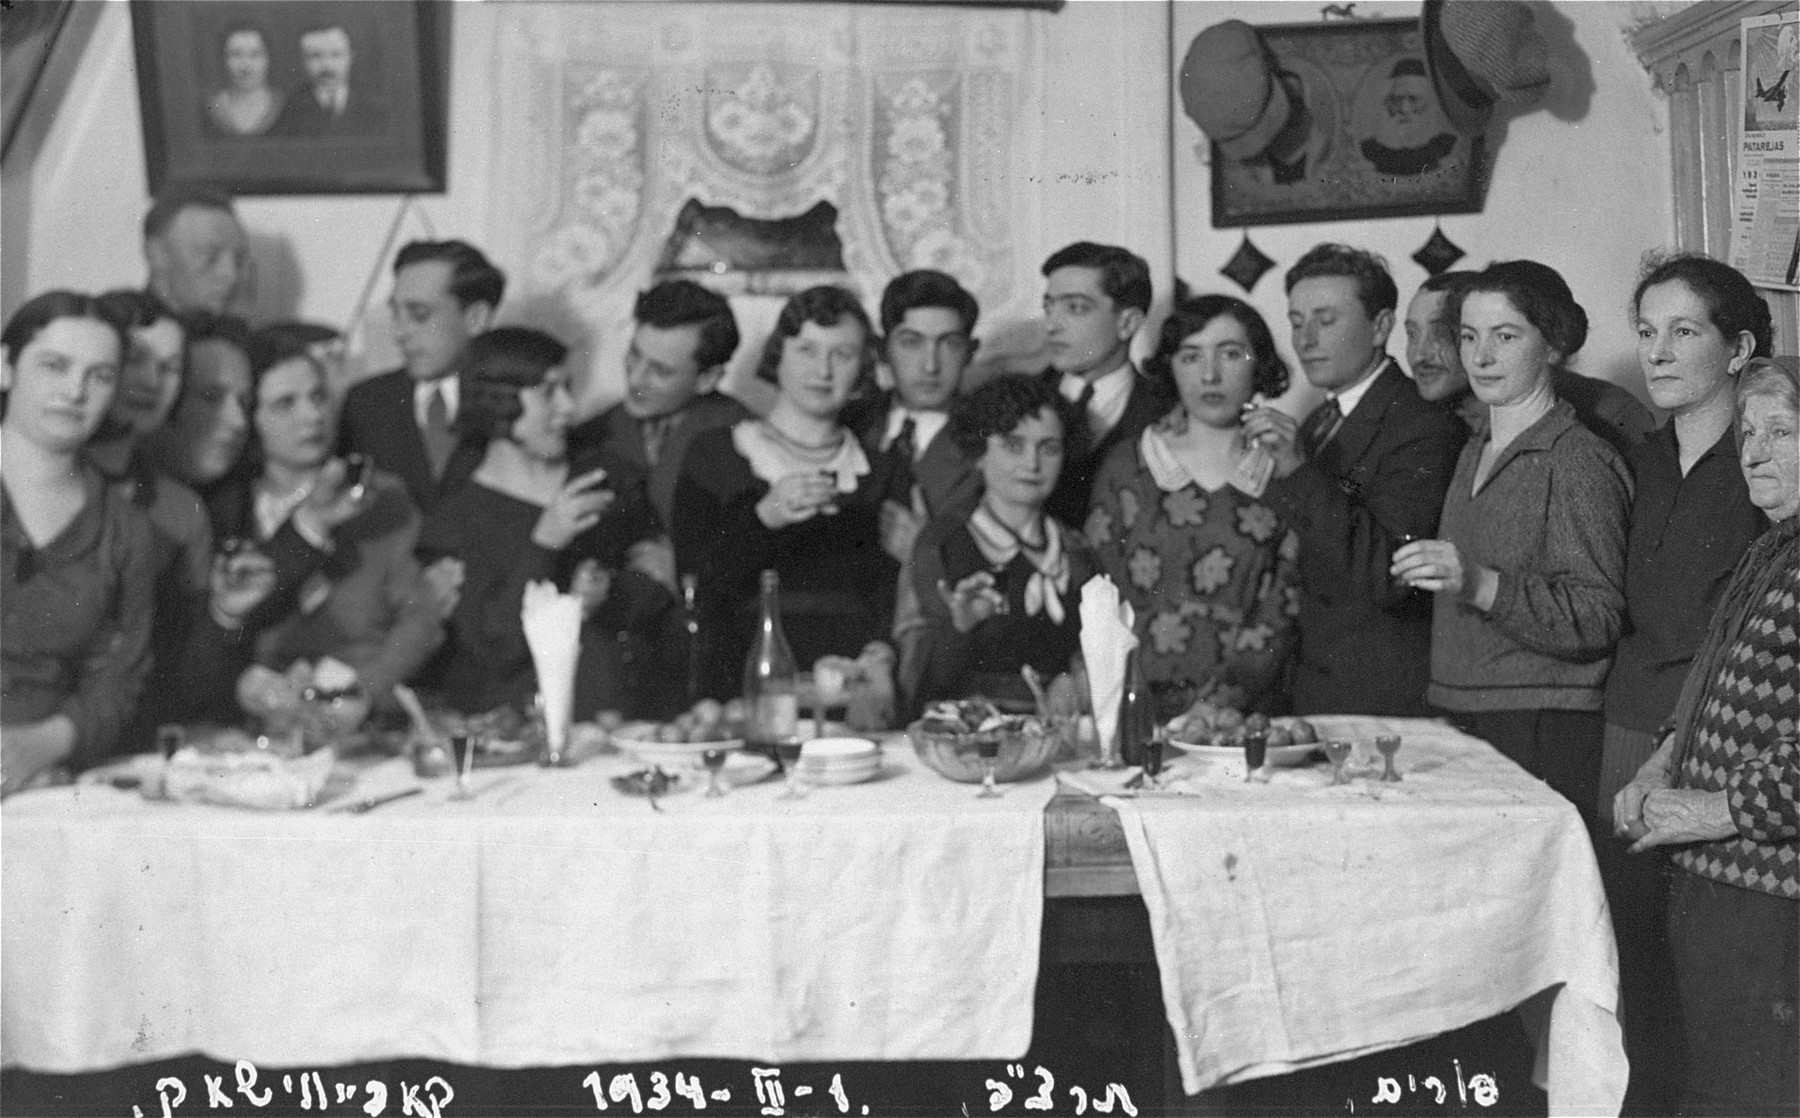 A family gathering on the Jewish holiday of Purim. Pictured seventh from the right (behind the two women) is Eliezer Kaplan, the donor's father.